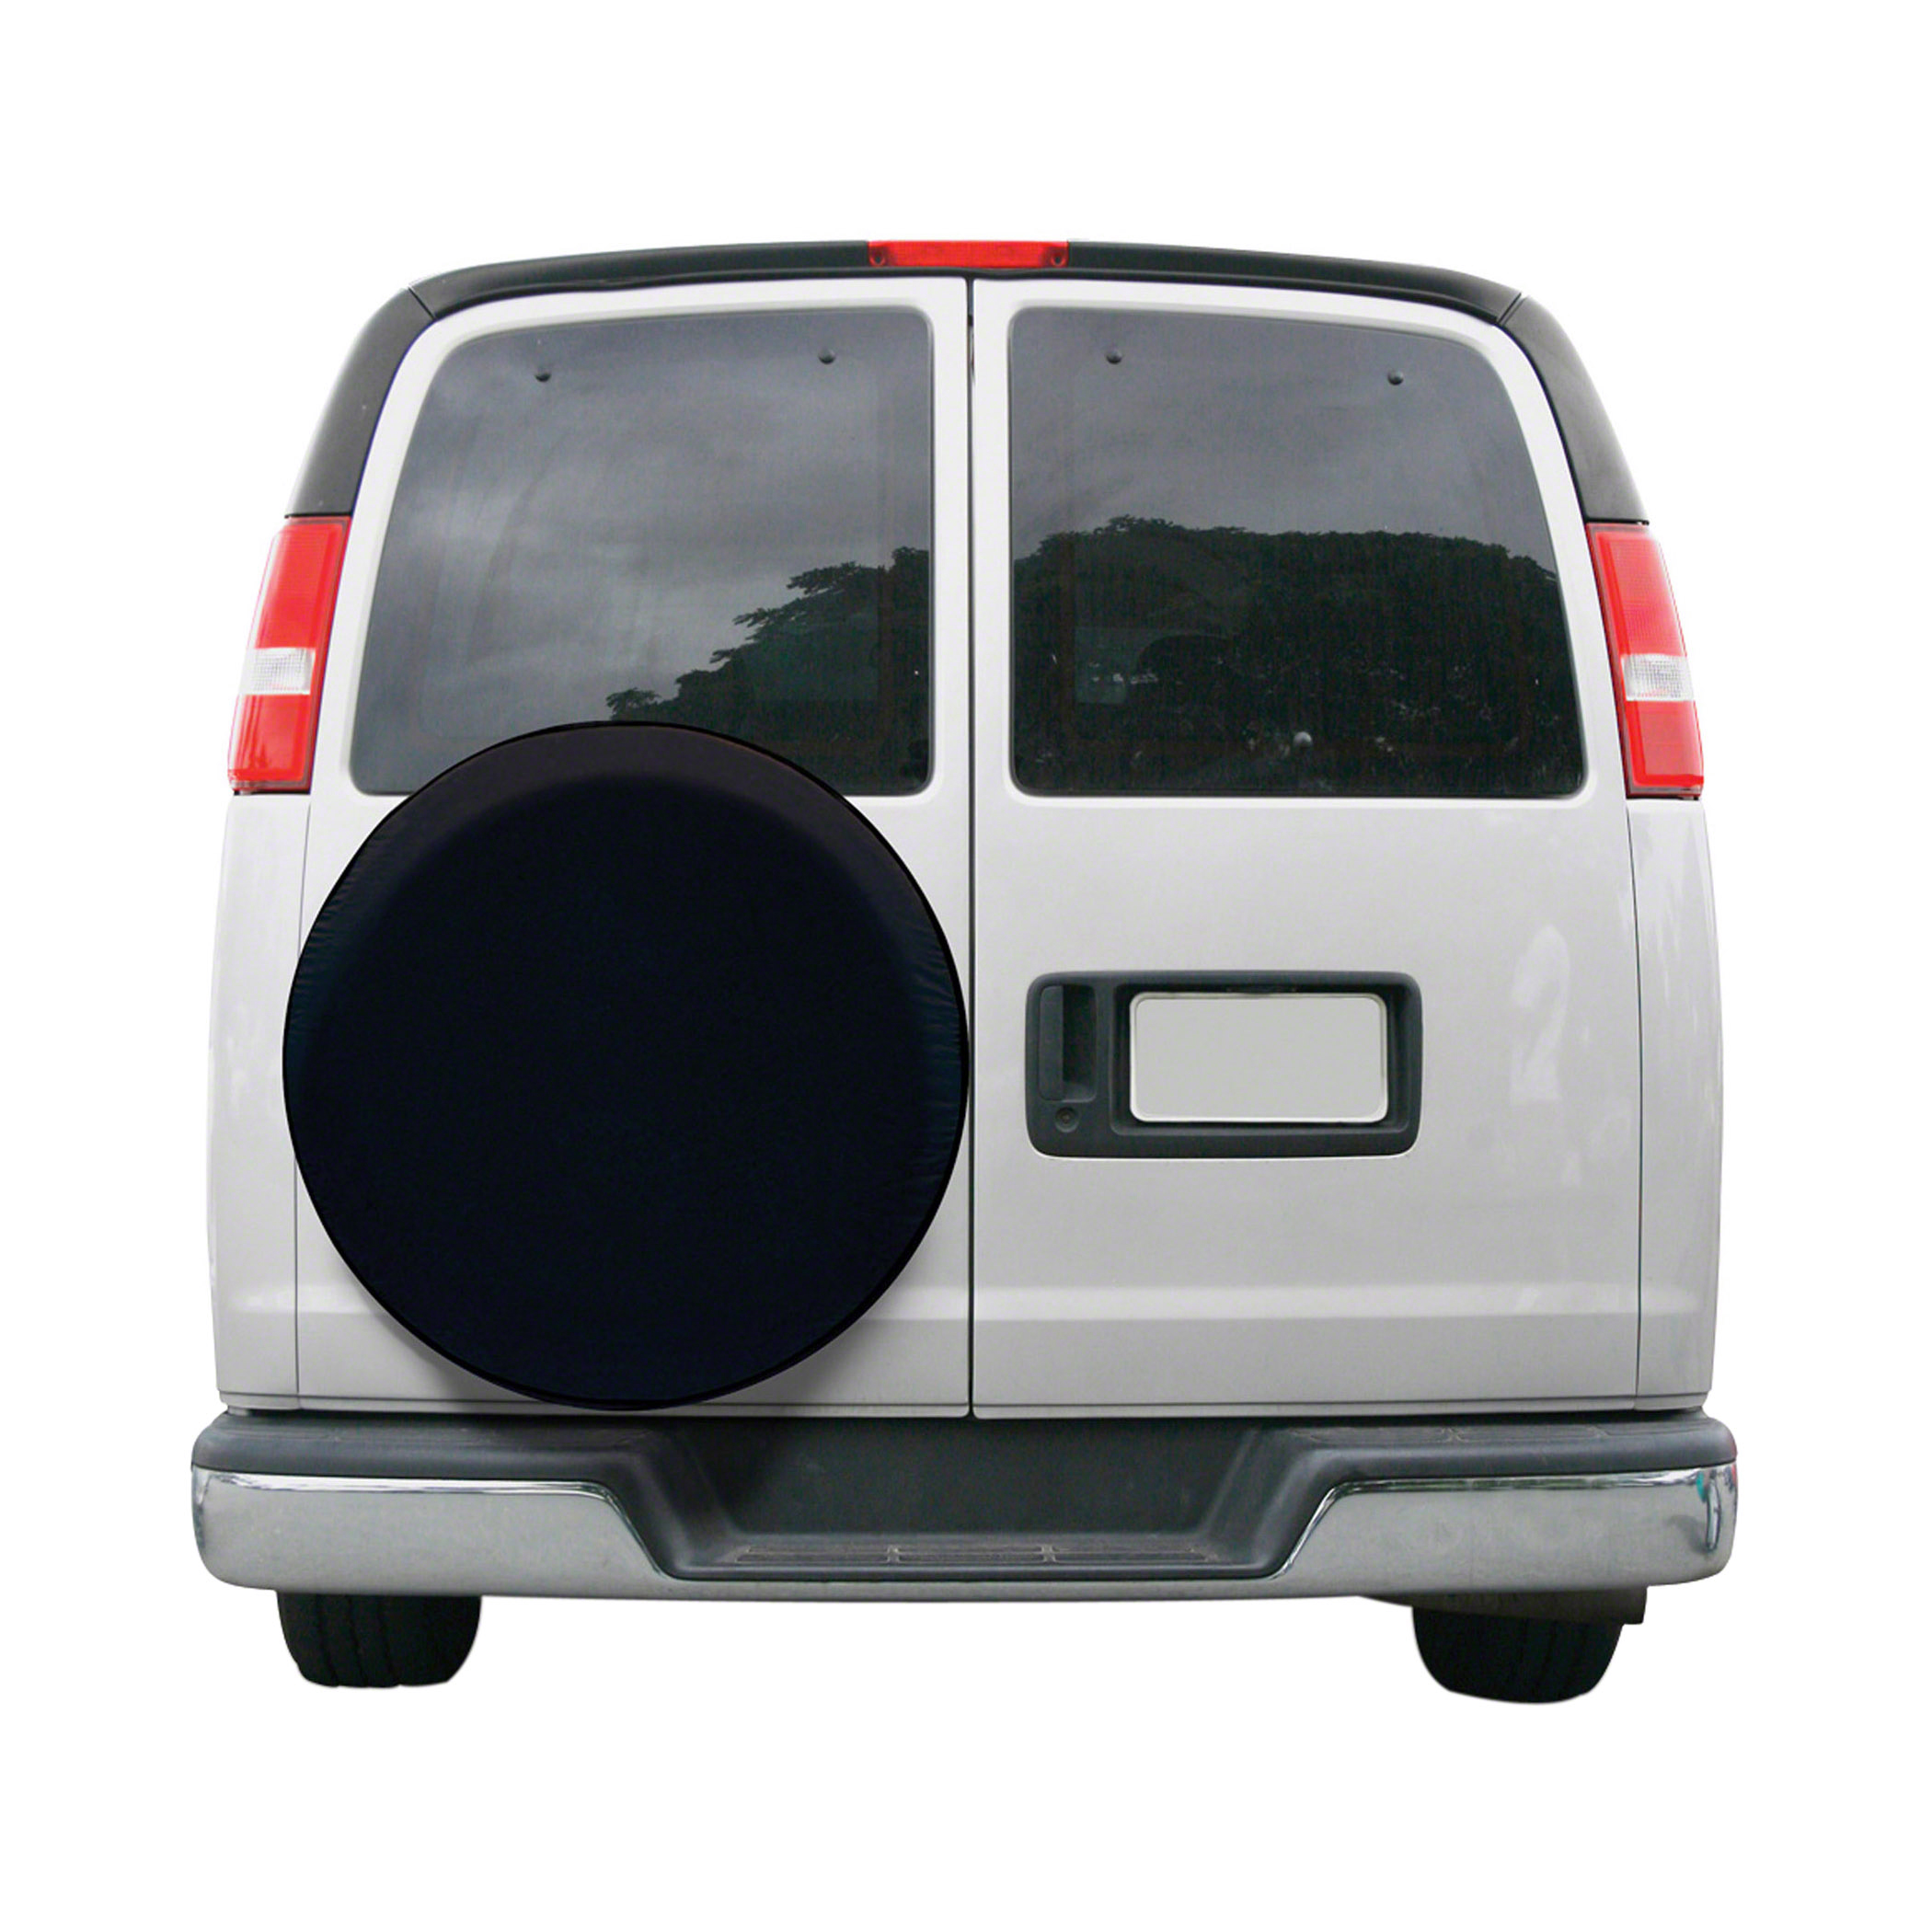 Heavy-Duty Waterproof Wheel Cover Vinyl Cover with All-Weather Protection-43-45D*9 RV Wheel Cover 1 Piece, 1 PVC Bag